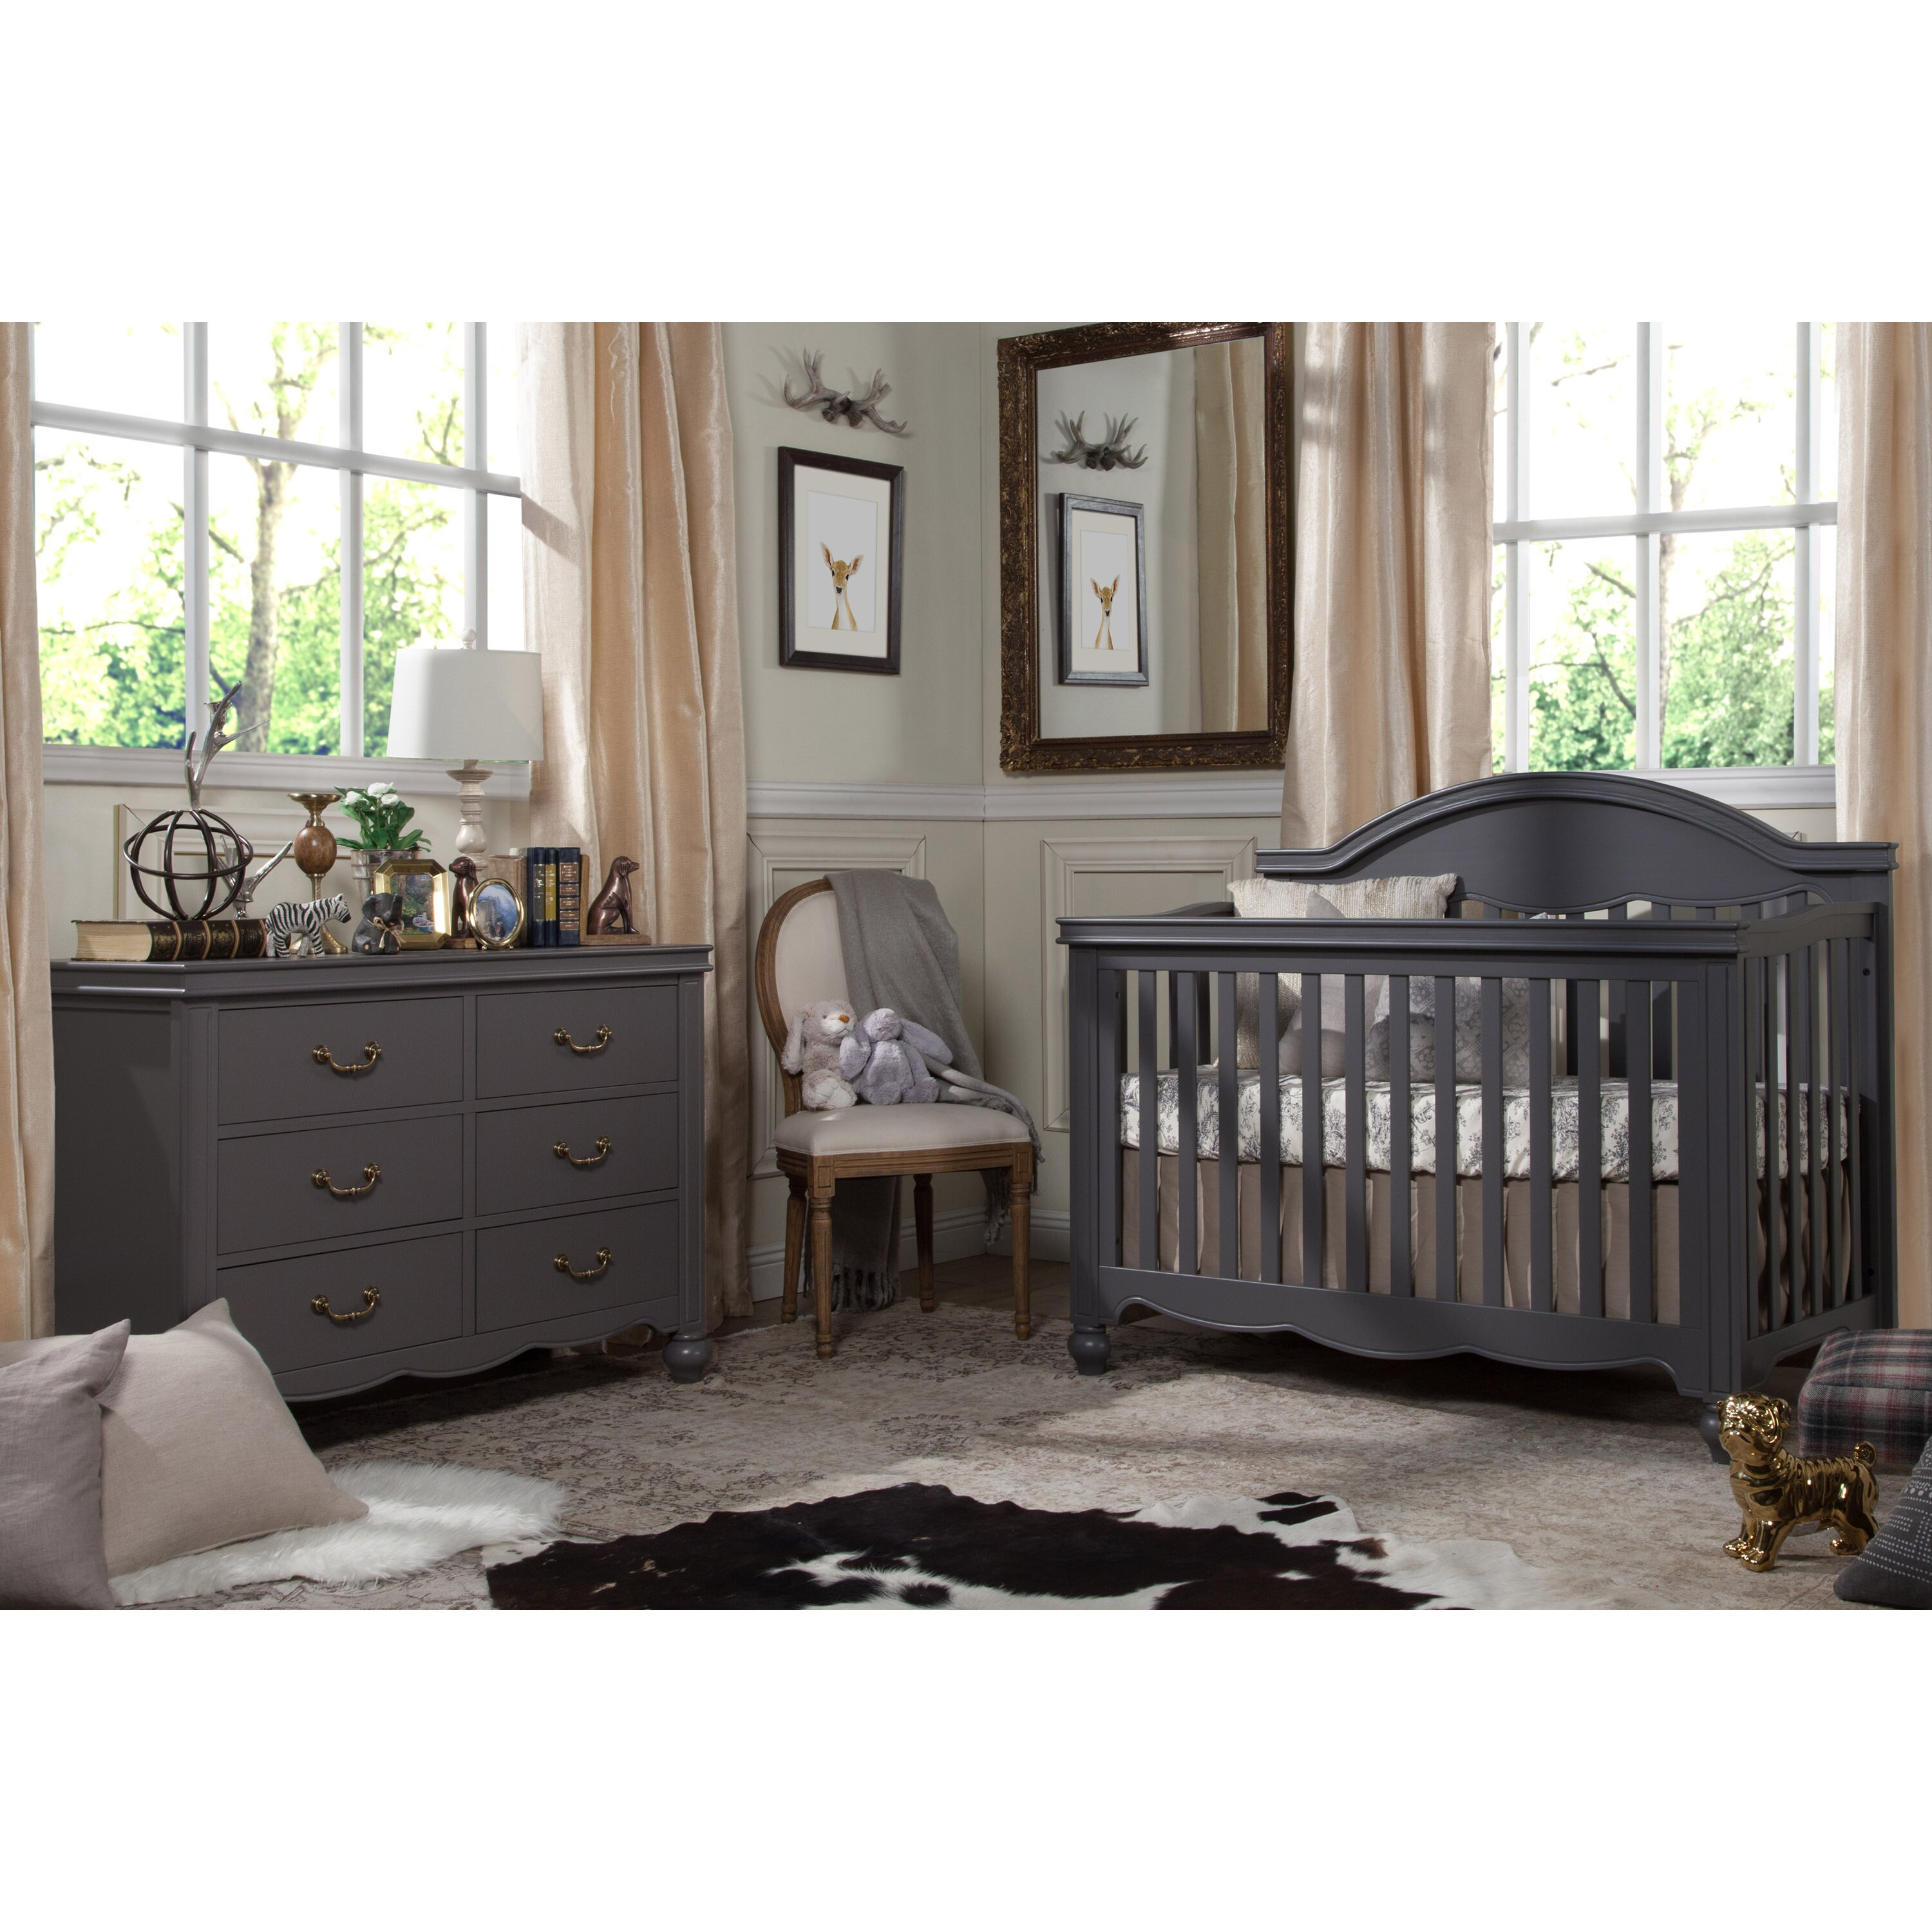 Emma iron crib for sale - Million Dollar Baby Classic Etienne 4 In 1 Convertible Crib